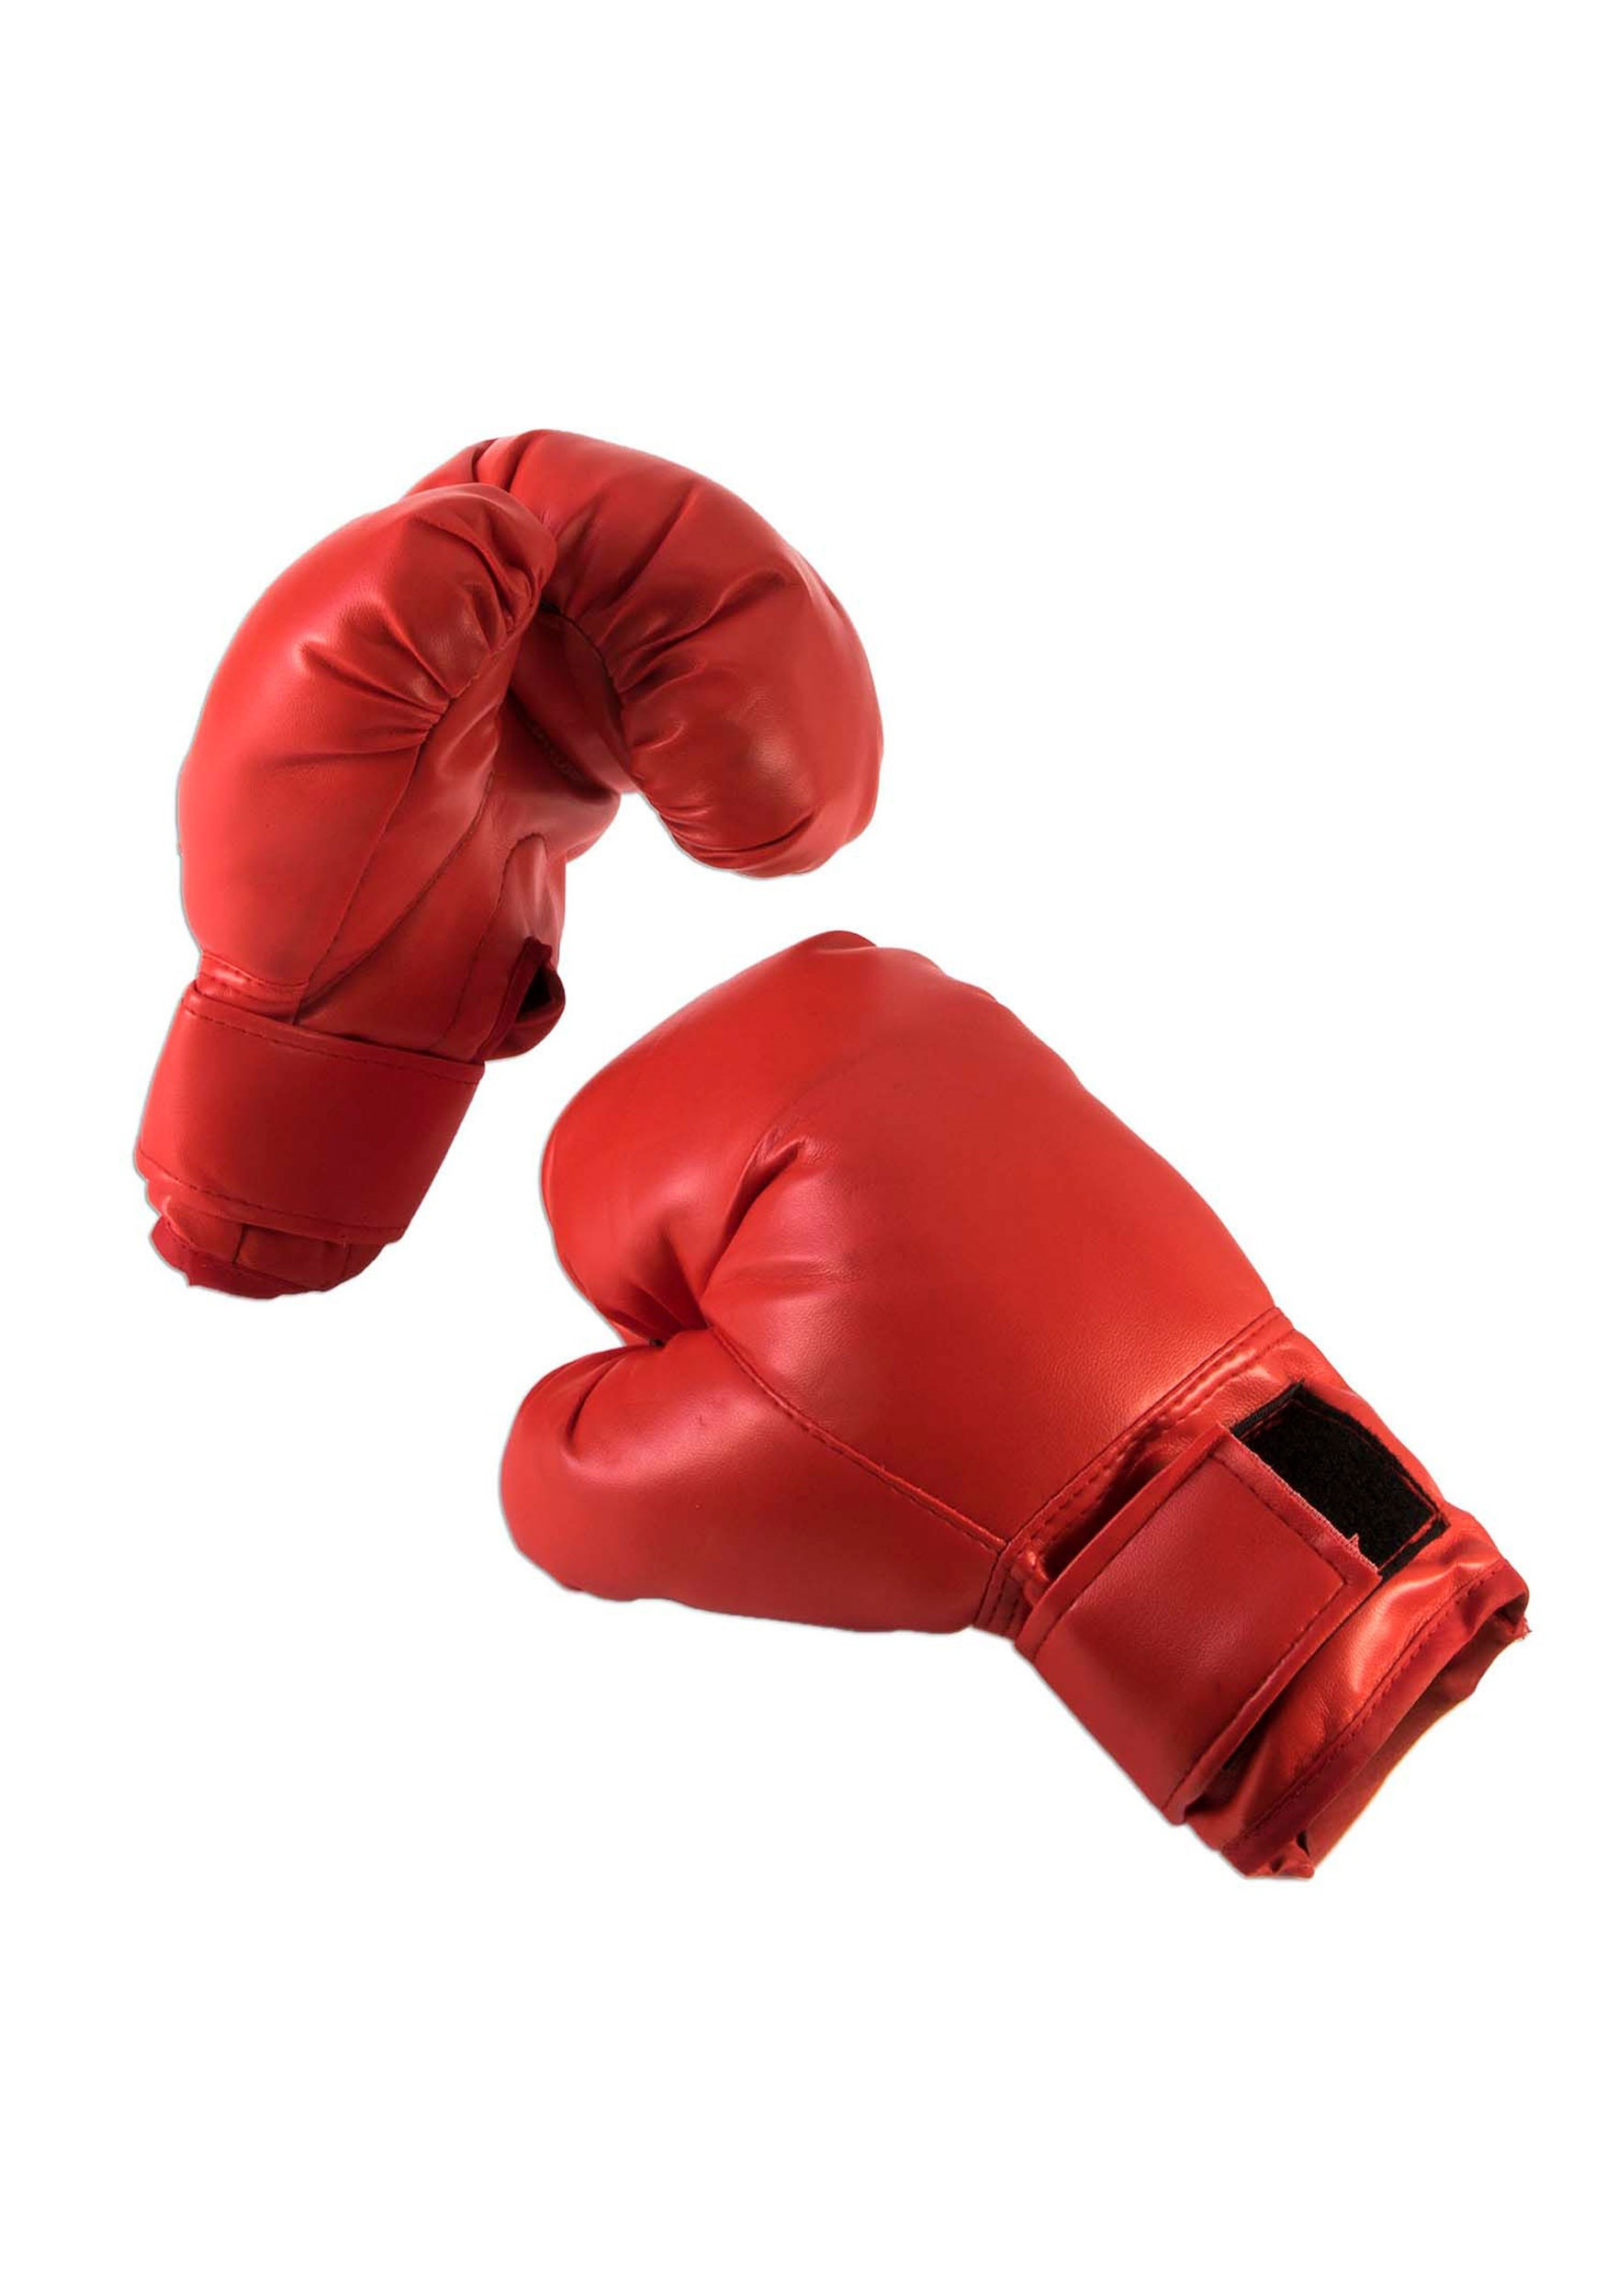 Boxing Gloves for Adults